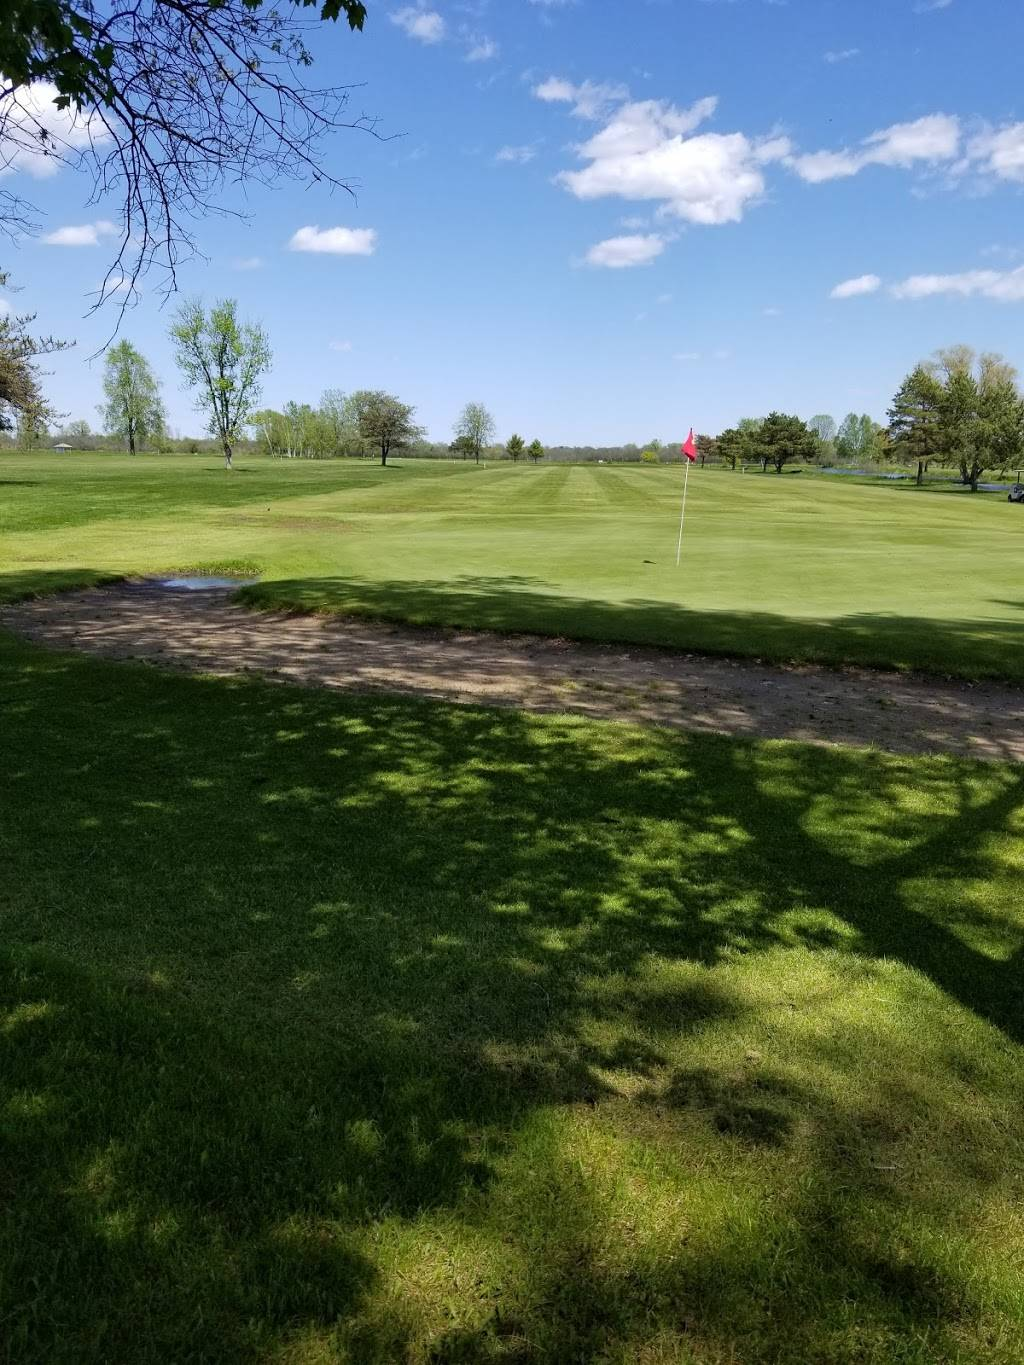 Shore Breeze Golf Course | restaurant | 532 Jefferson St, Oconto, WI 54153, USA | 9208343139 OR +1 920-834-3139